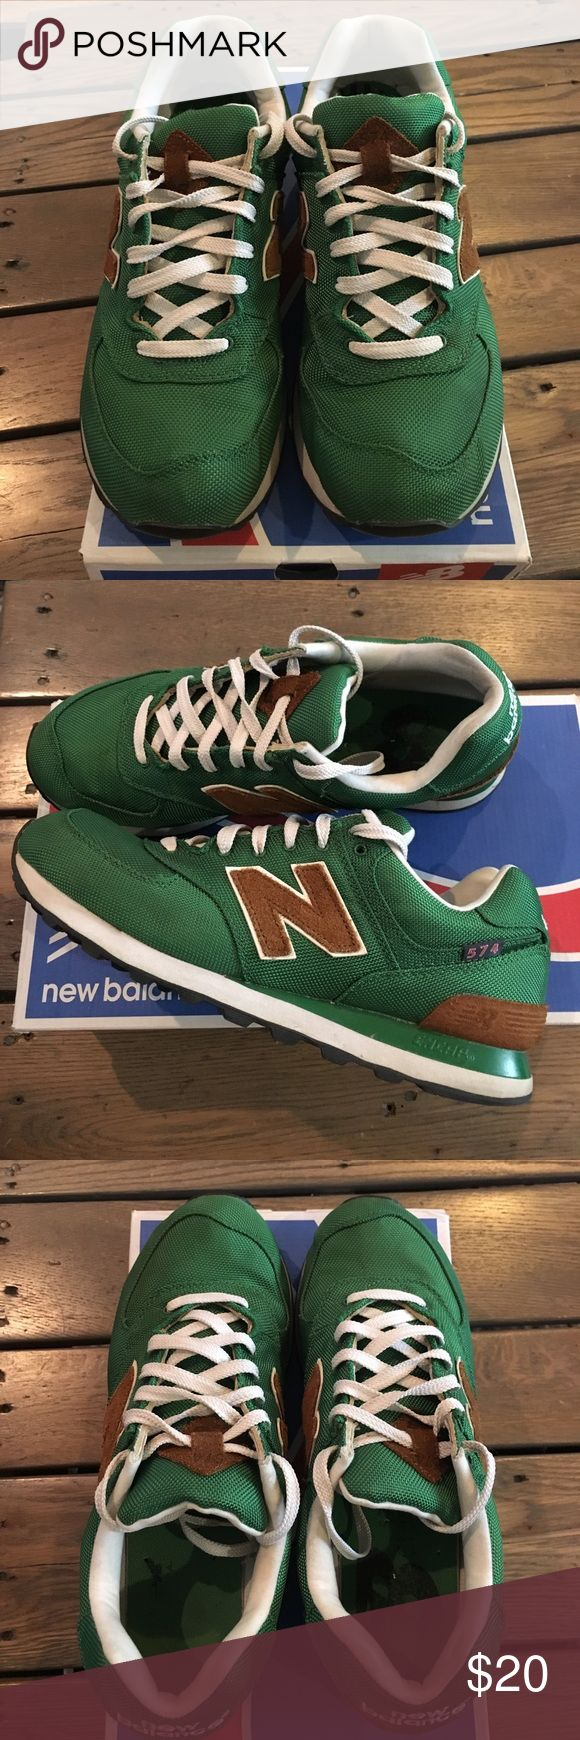 Green New Balance Sneakers Good condition green New Balance sneakers. New Balance Shoes Sneakers